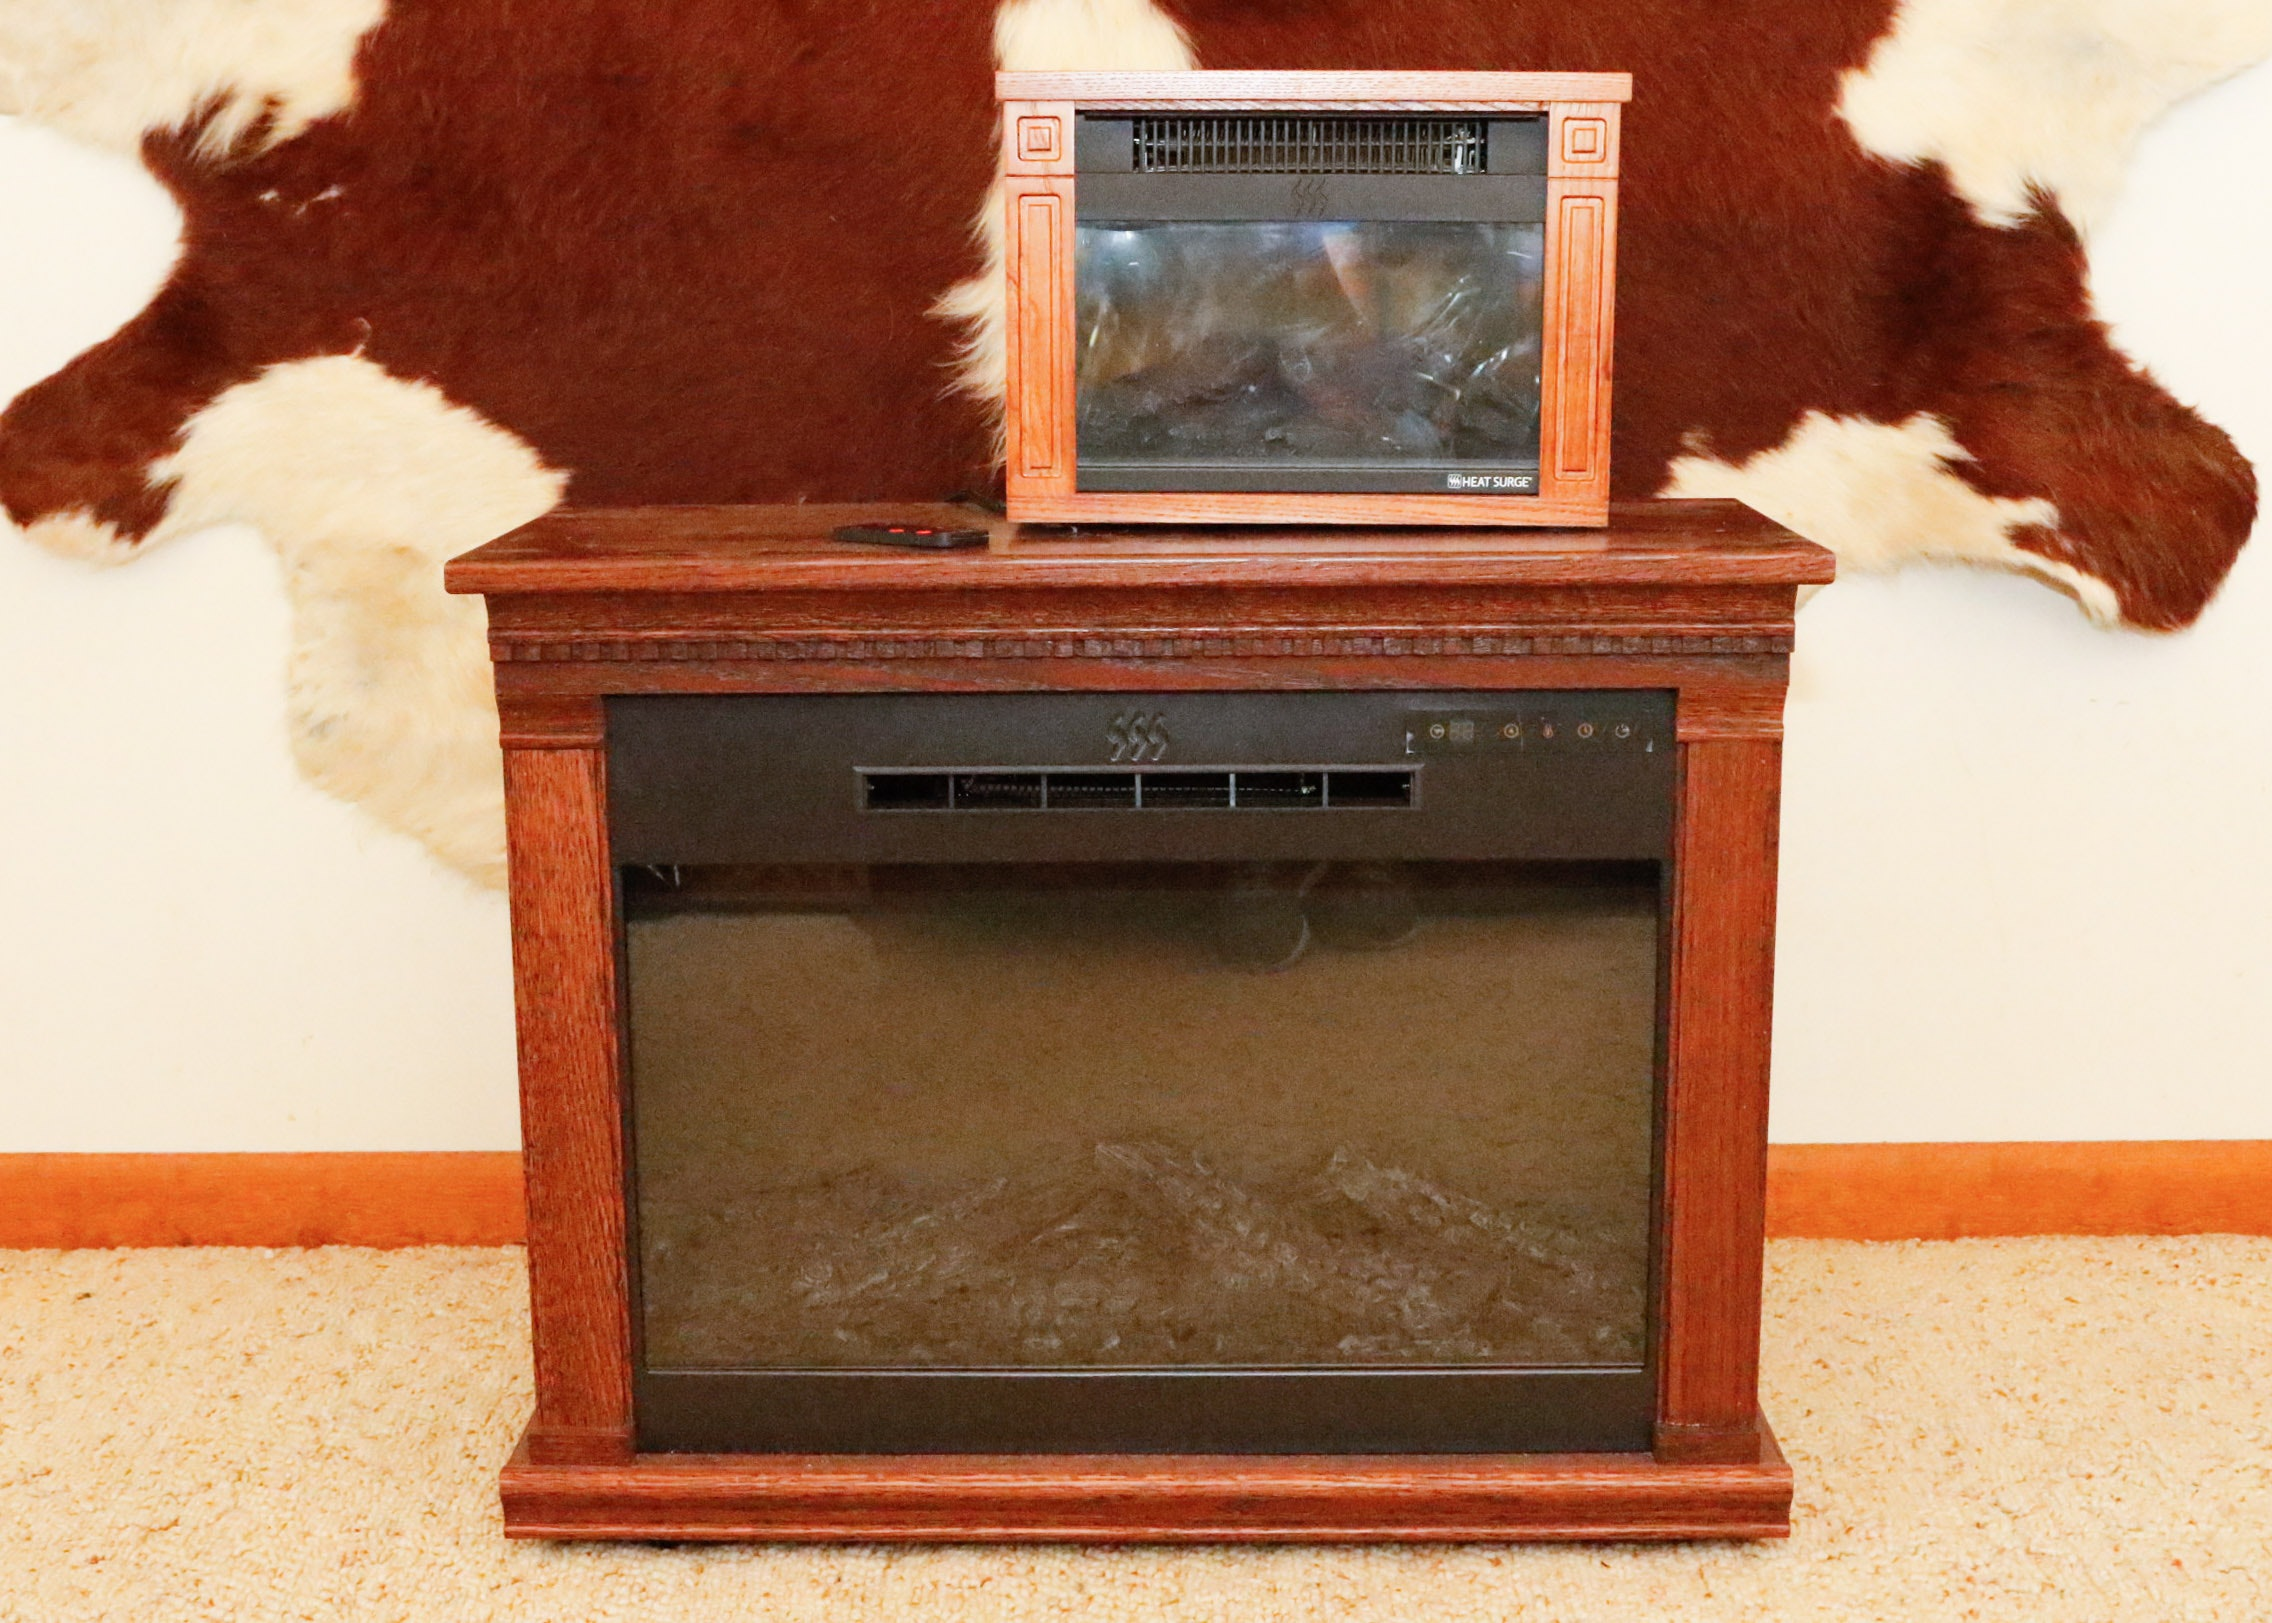 Two Heat Surge Electric Fireplace Units : EBTH